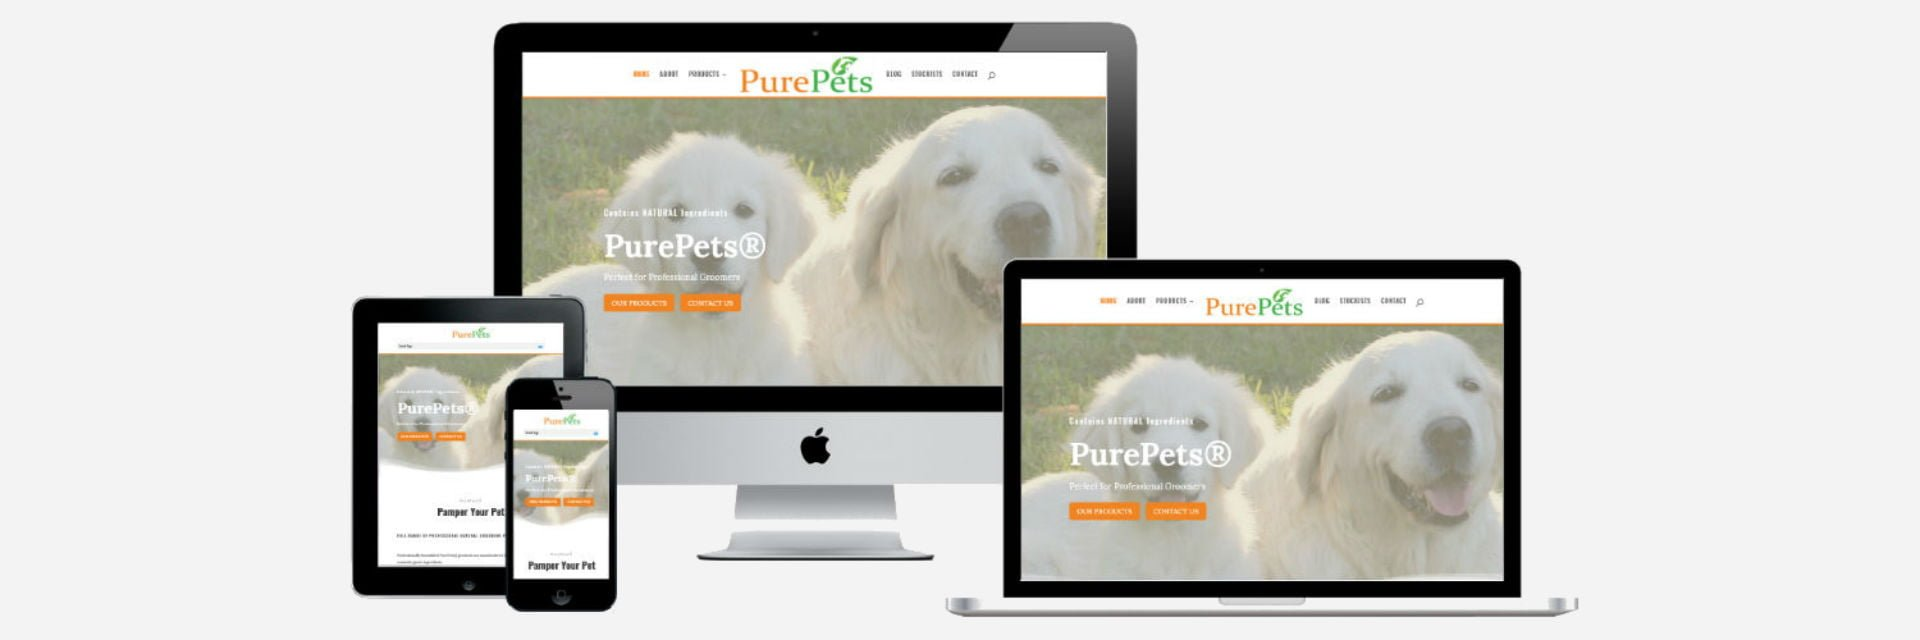 PurePets - New Website Design